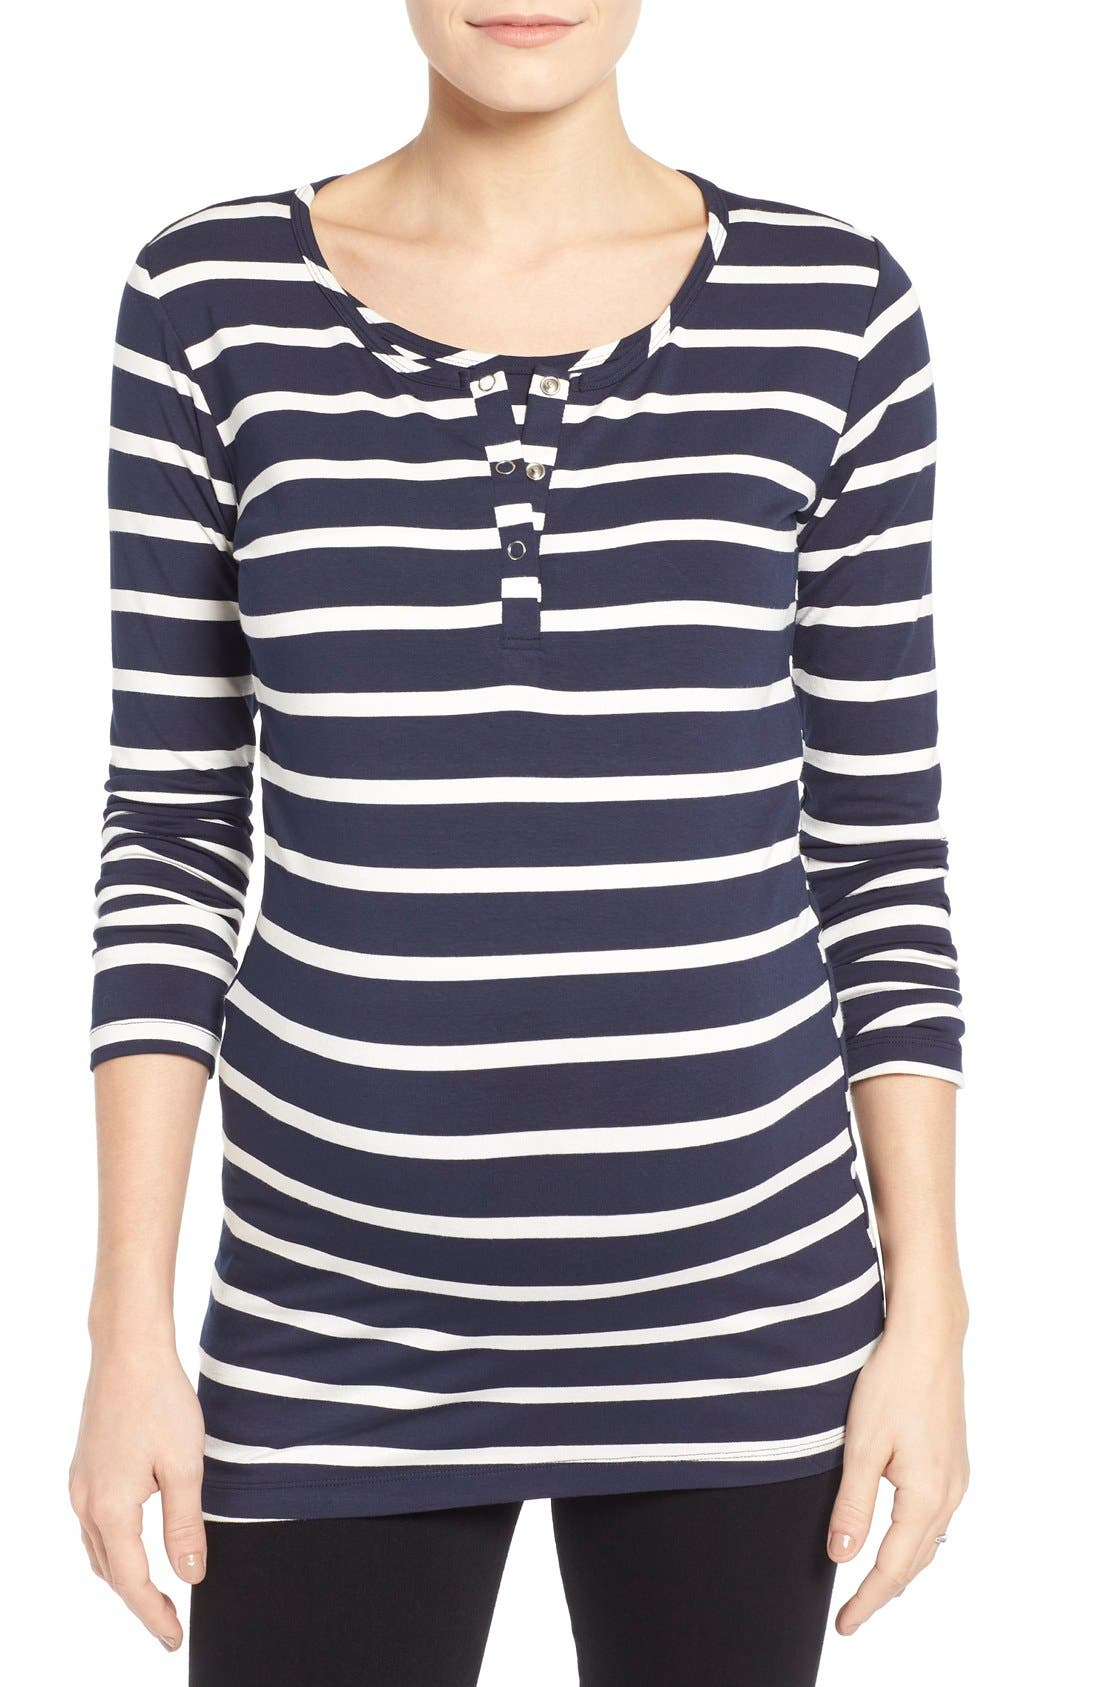 'Wendy' Nursing Top,                         Main,                         color, UNEVEN NAVY STRIPE